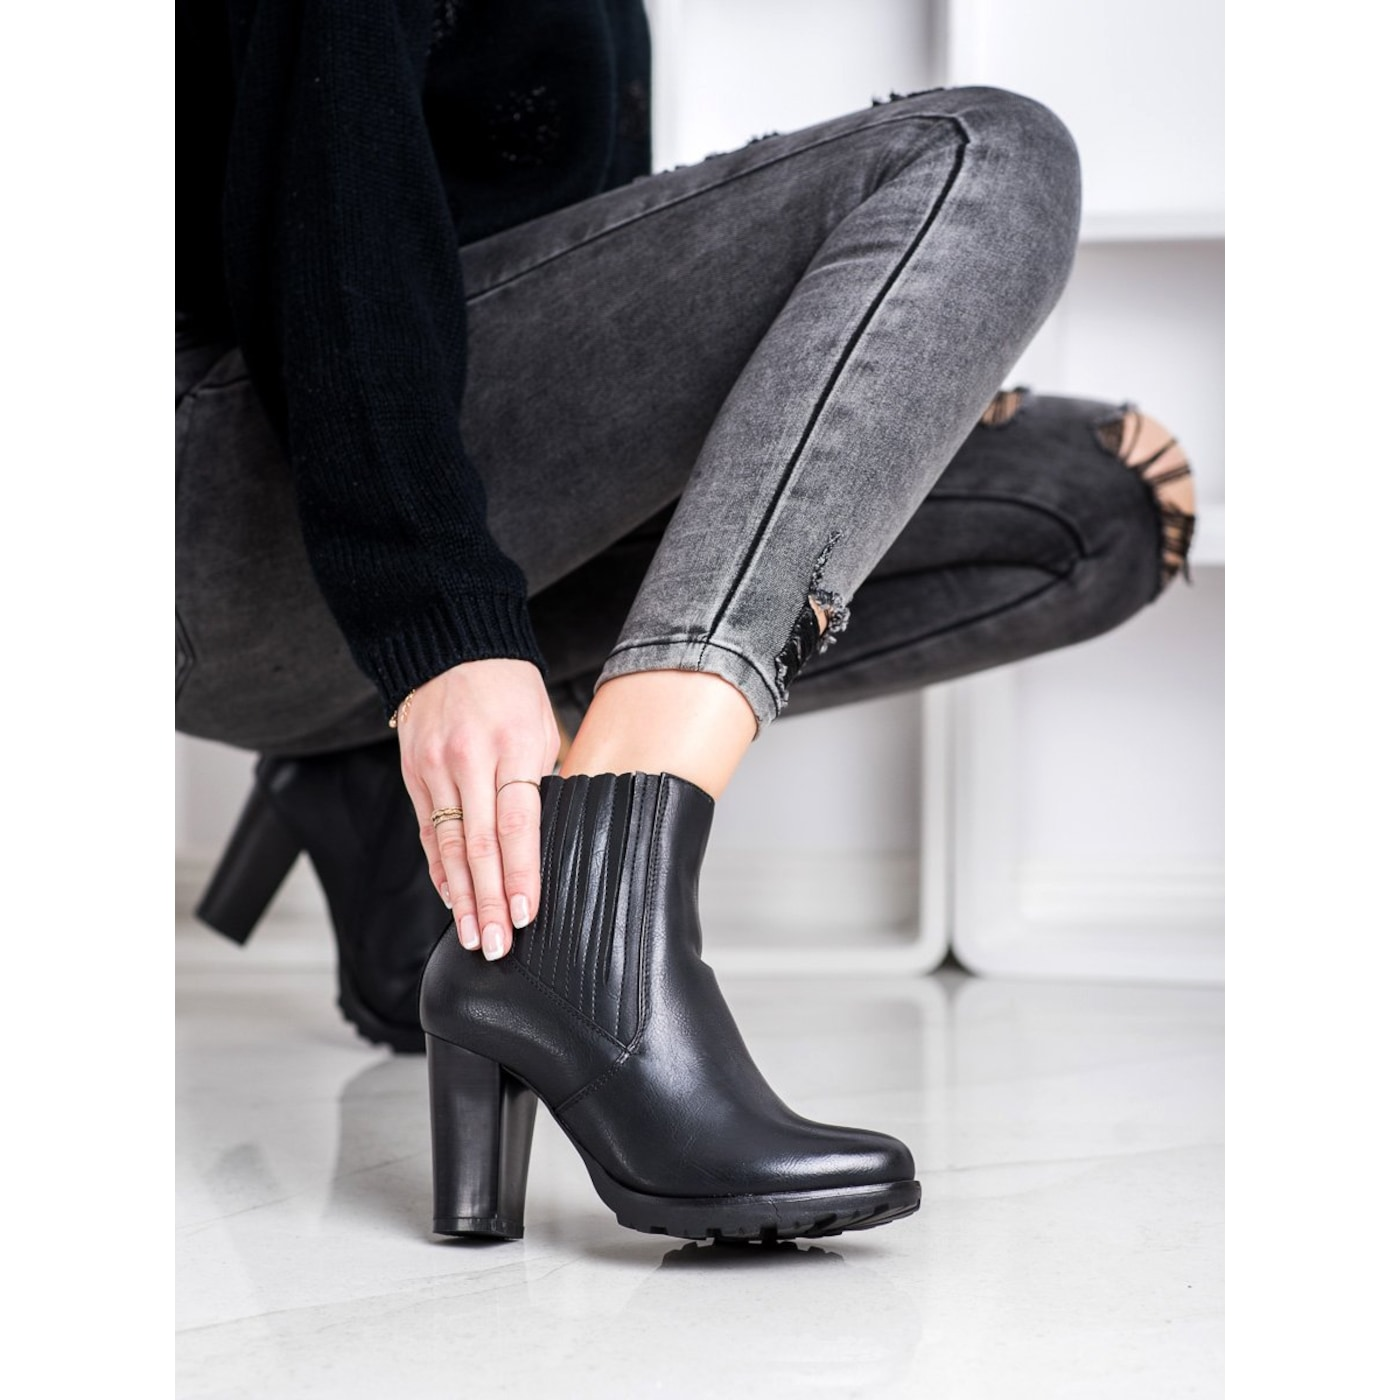 SUPER MODE BLACK BOOTIES ON THE POST